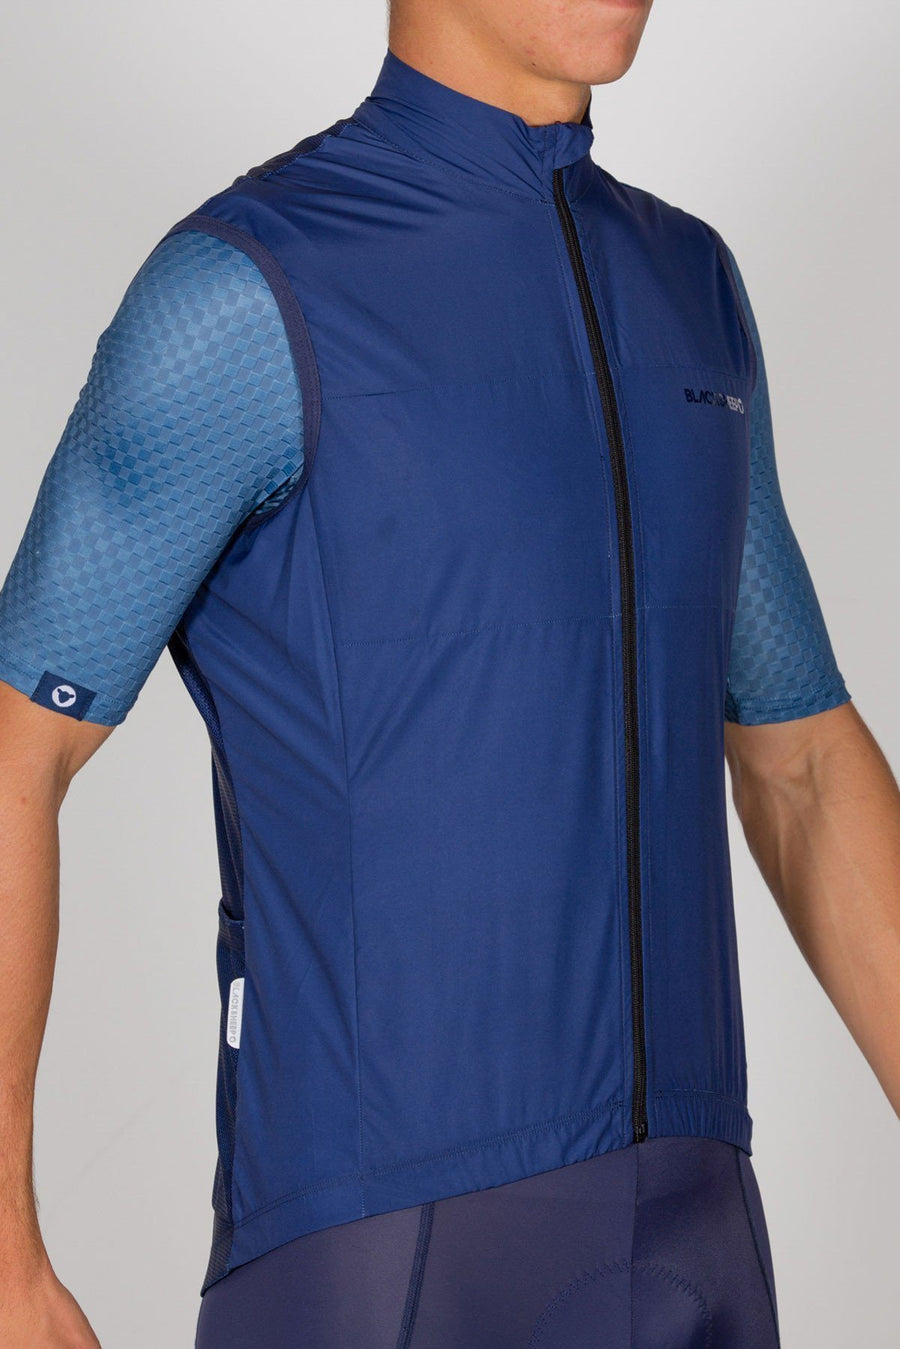 Euro Collection Men's Navy Wind Vest